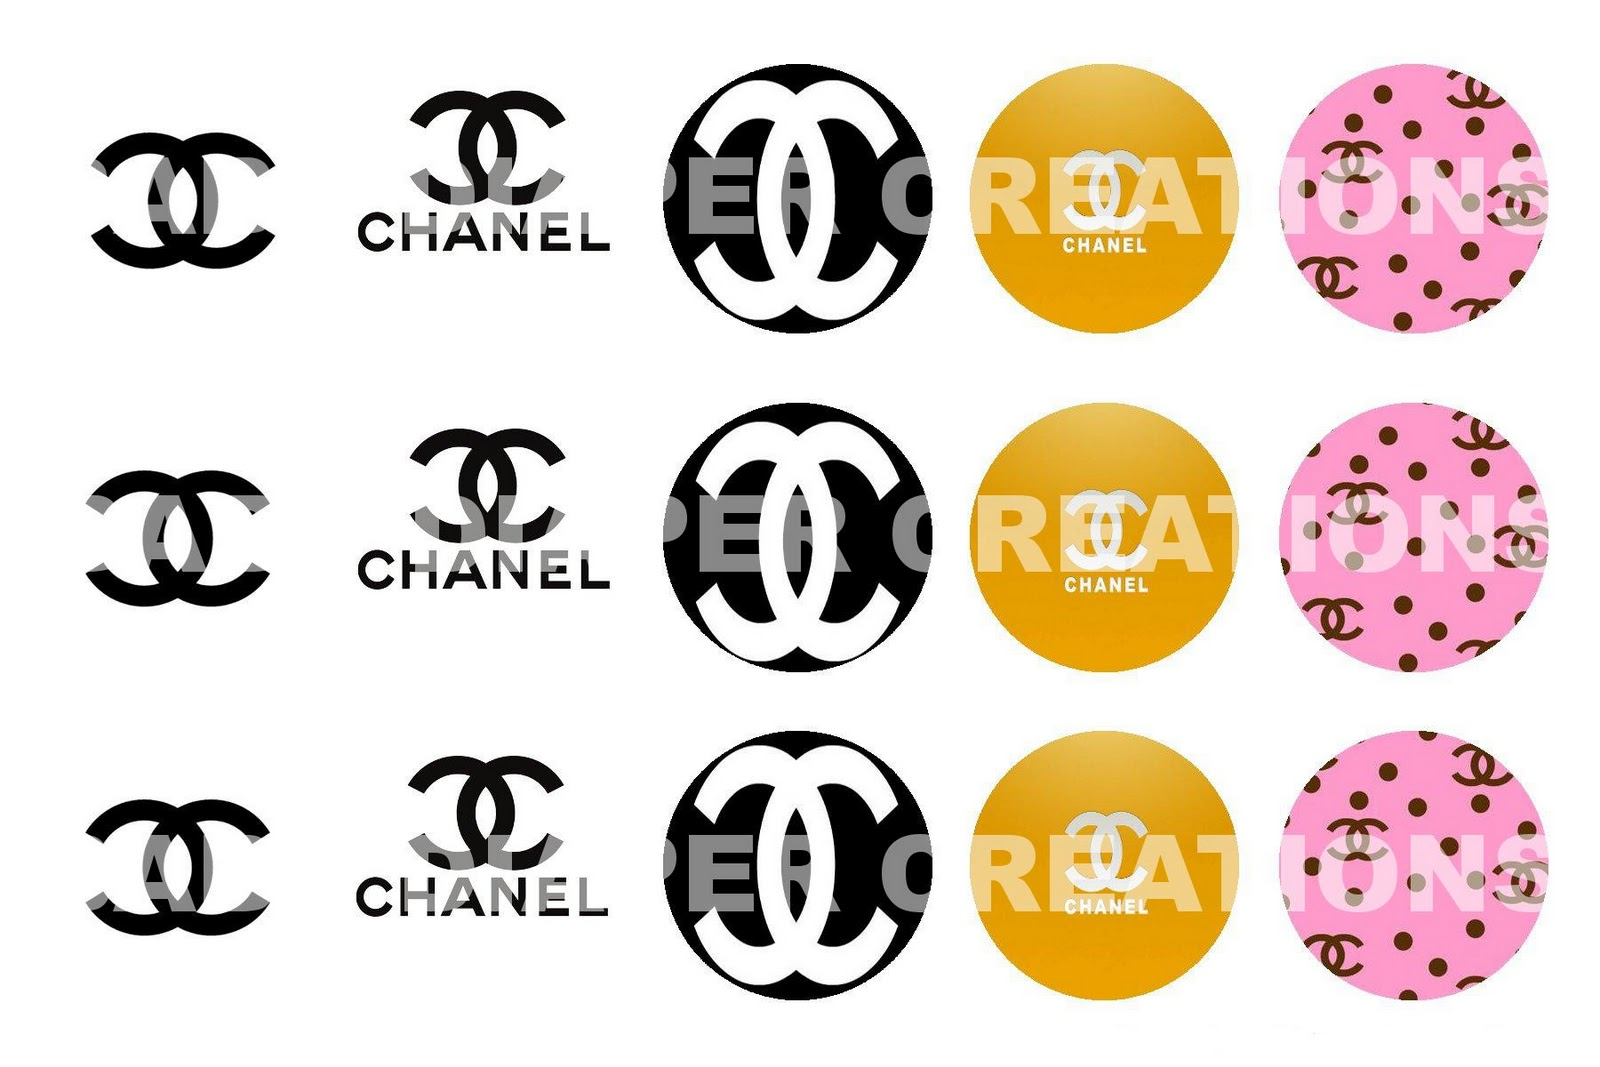 Baby diaper creations blog new bottle cap images chanel pronofoot35fo Image collections